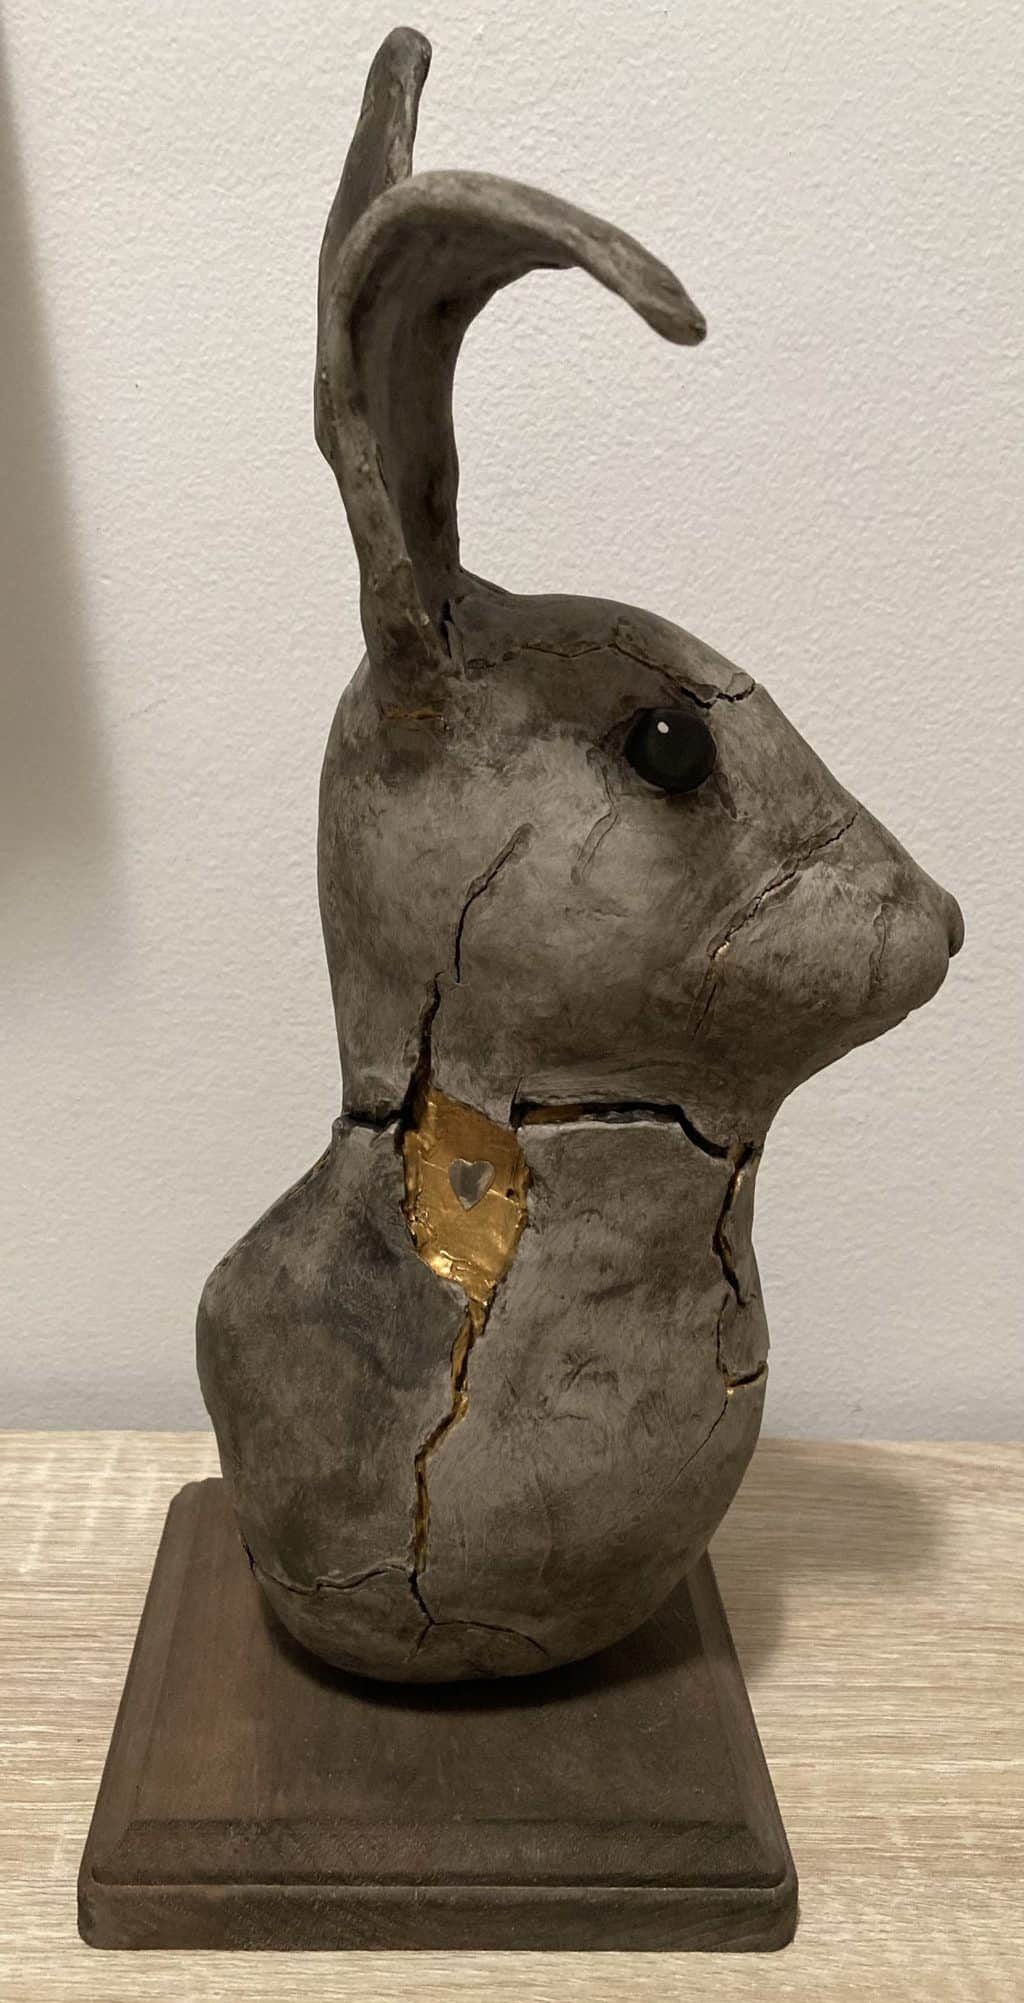 Bunny made with air dry clay